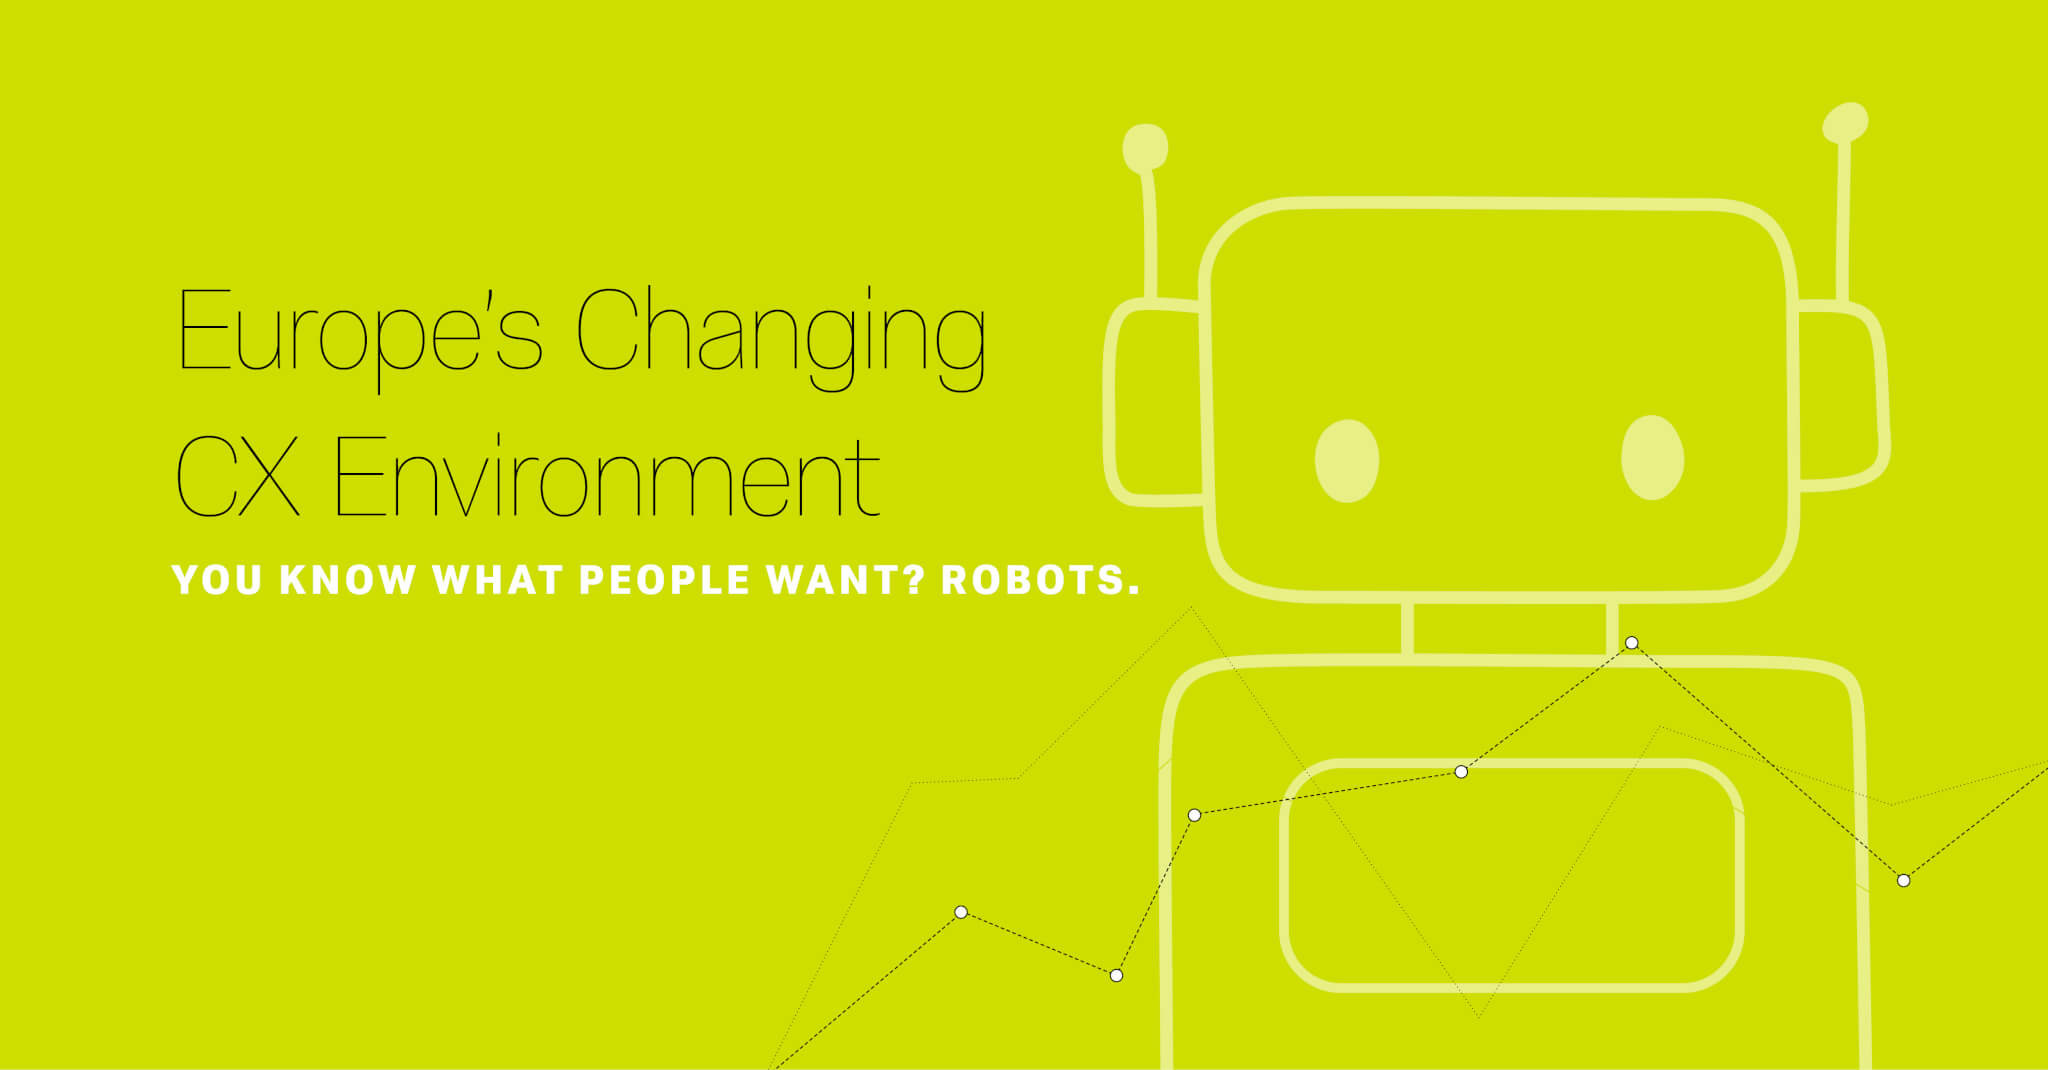 Europe's Changing CX Environment [Infographic]